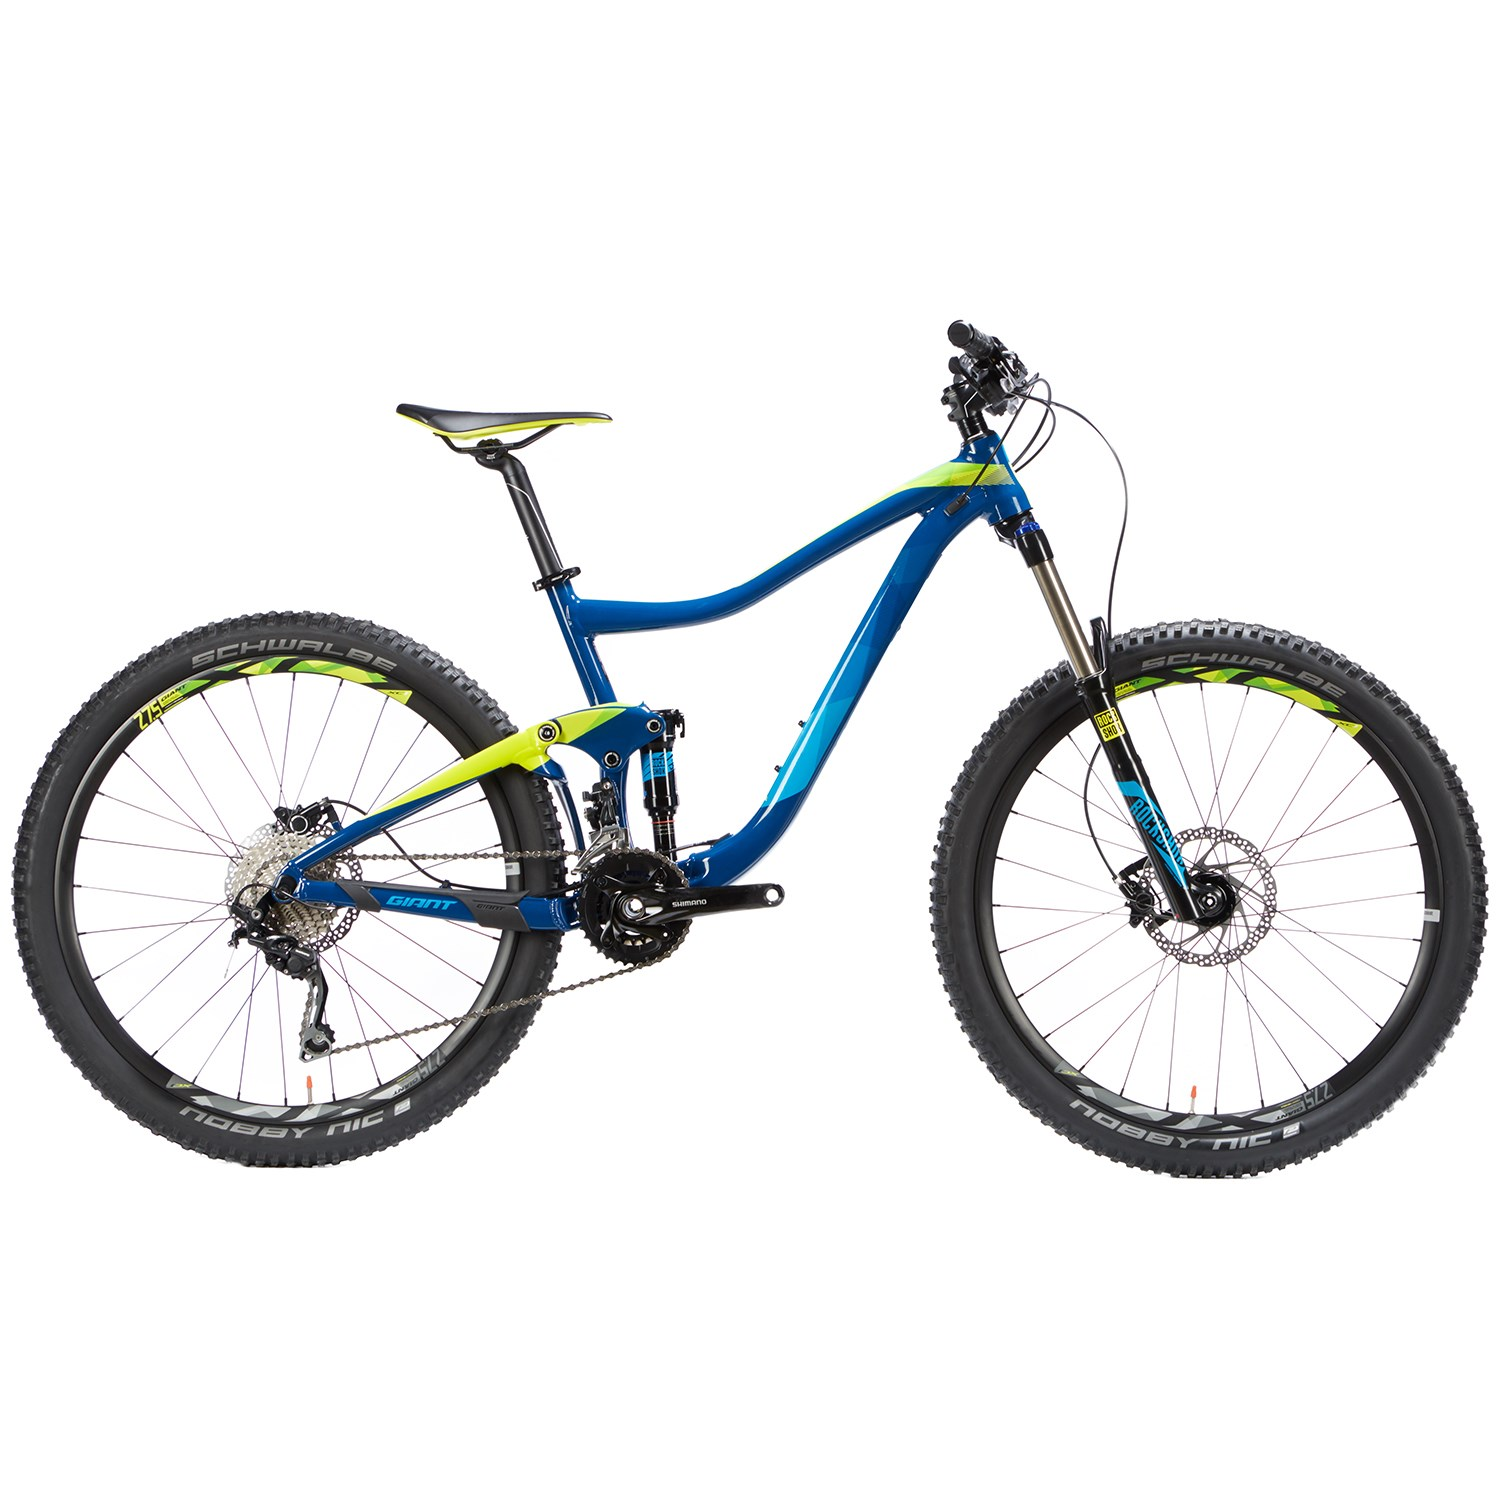 Giant Trance 3 Complete Mountain Bike 2018 Evo